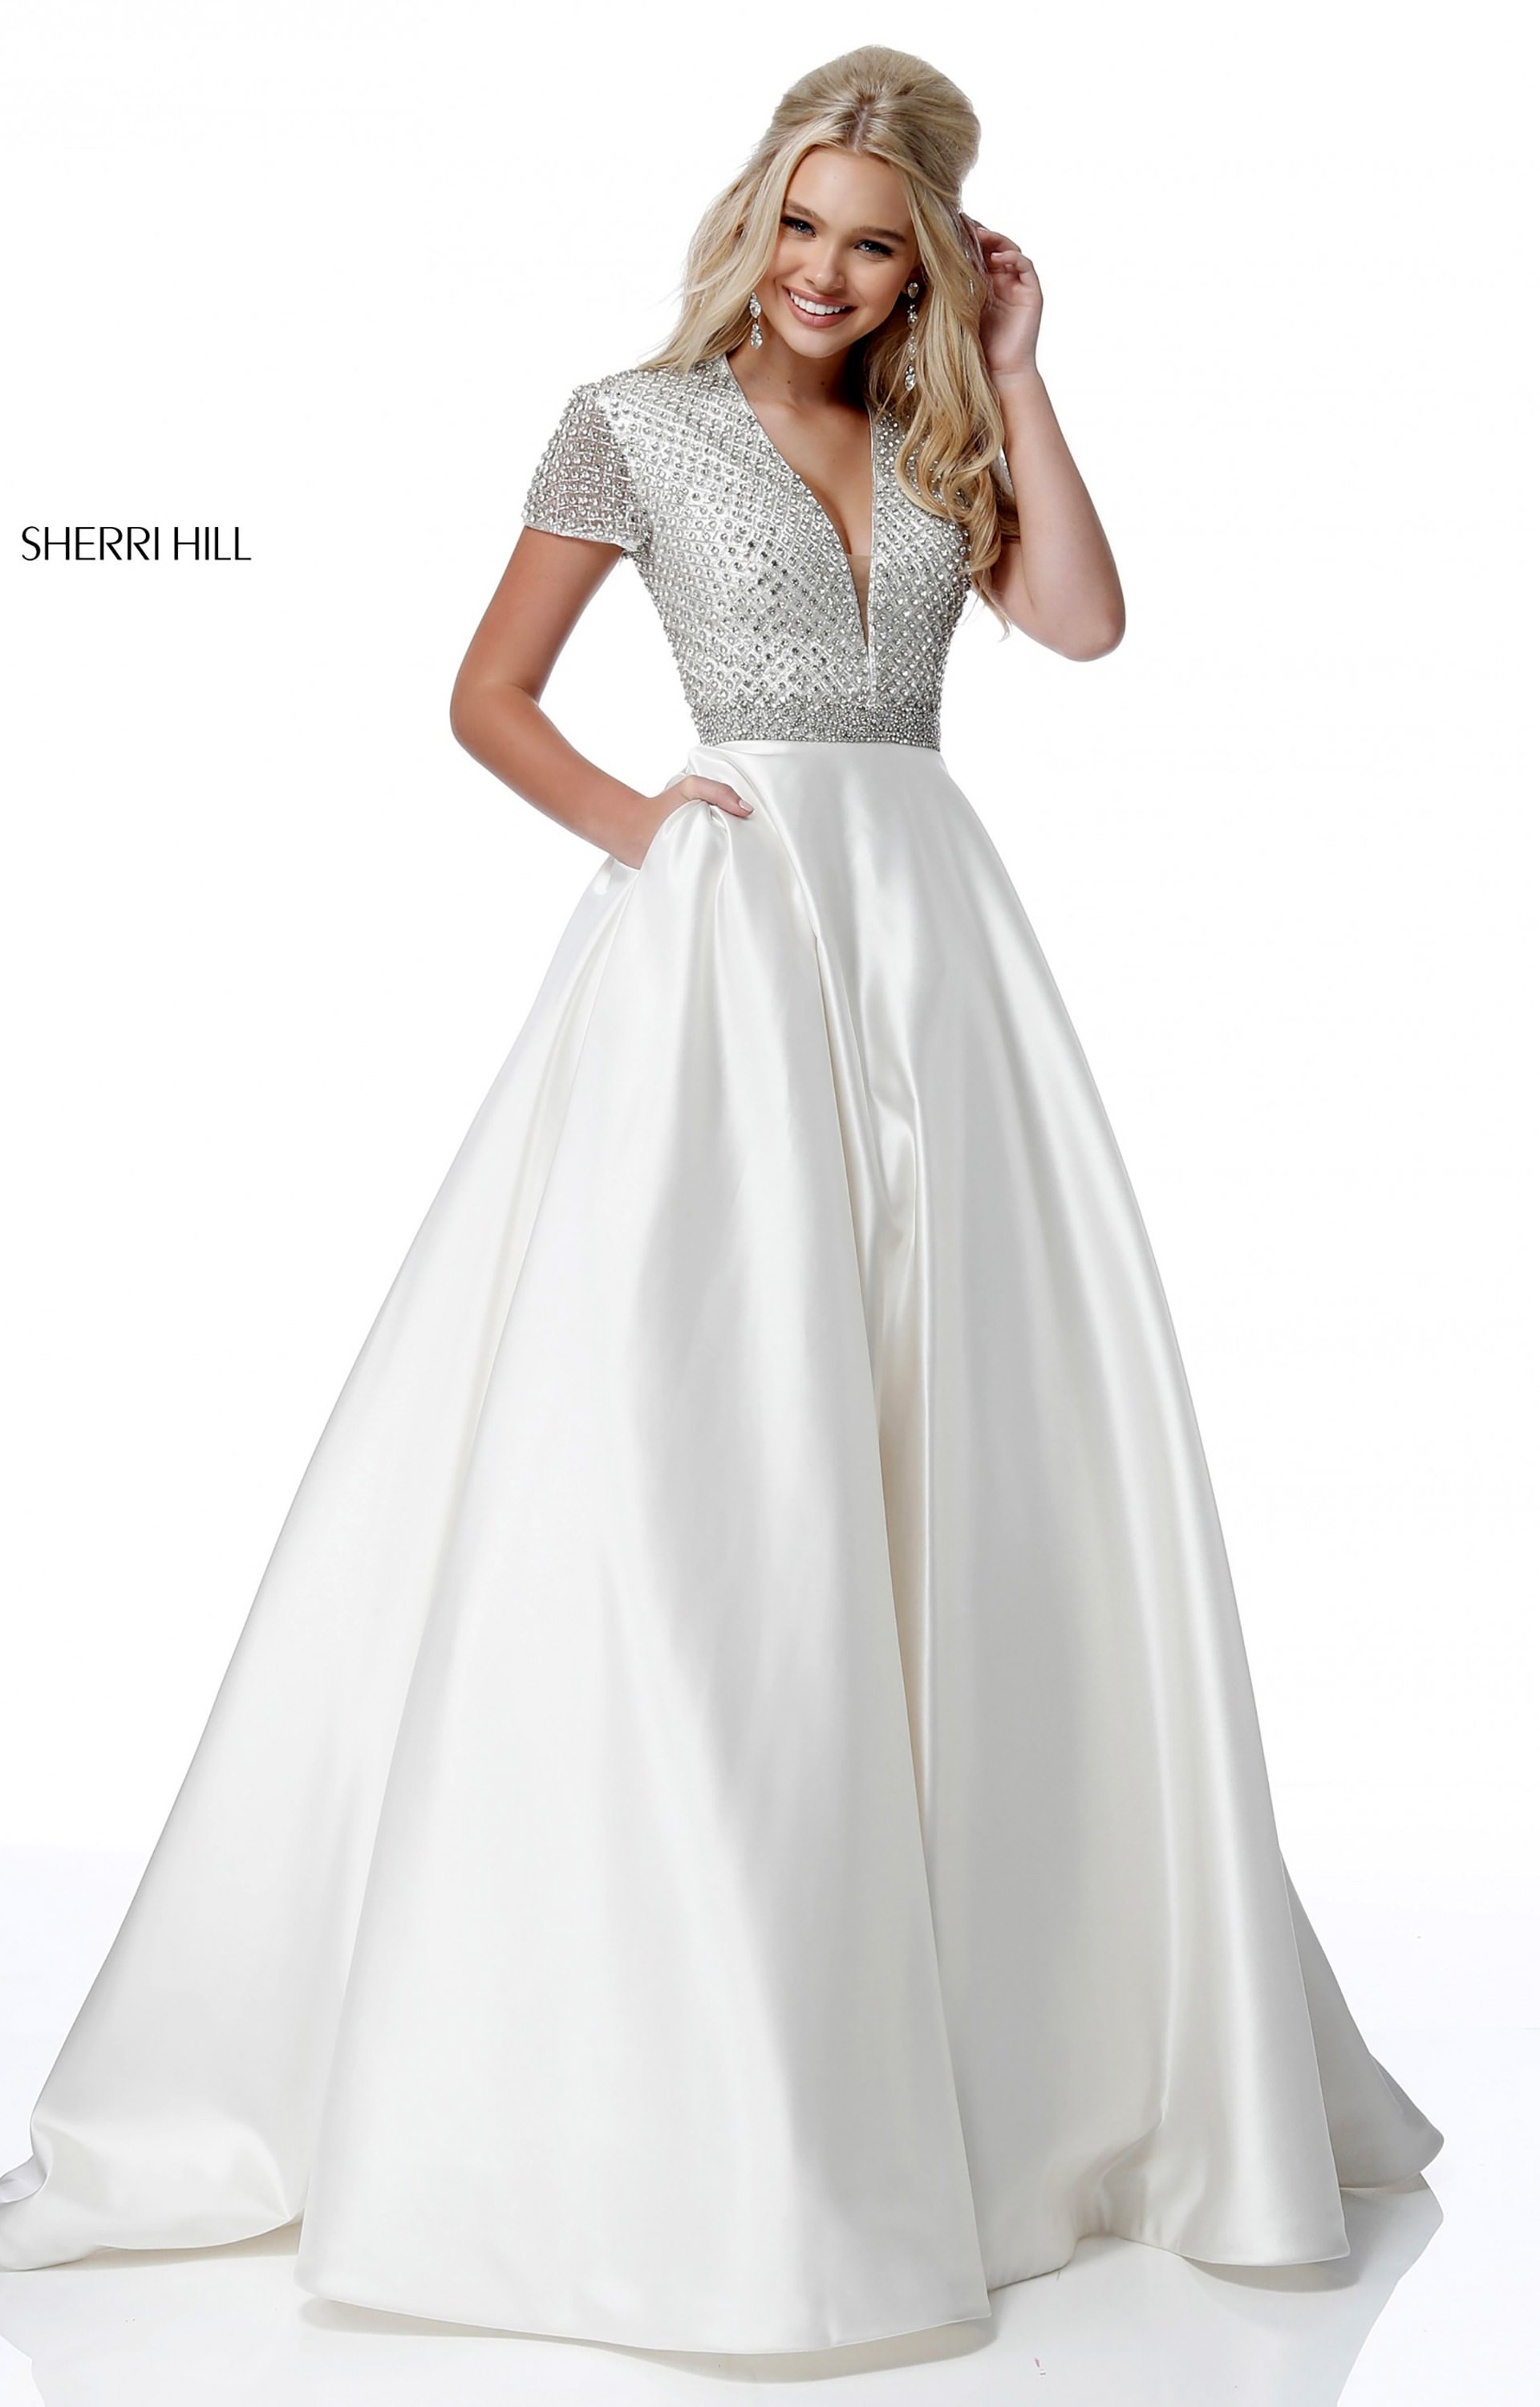 Sherri Hill 51819 picture 5